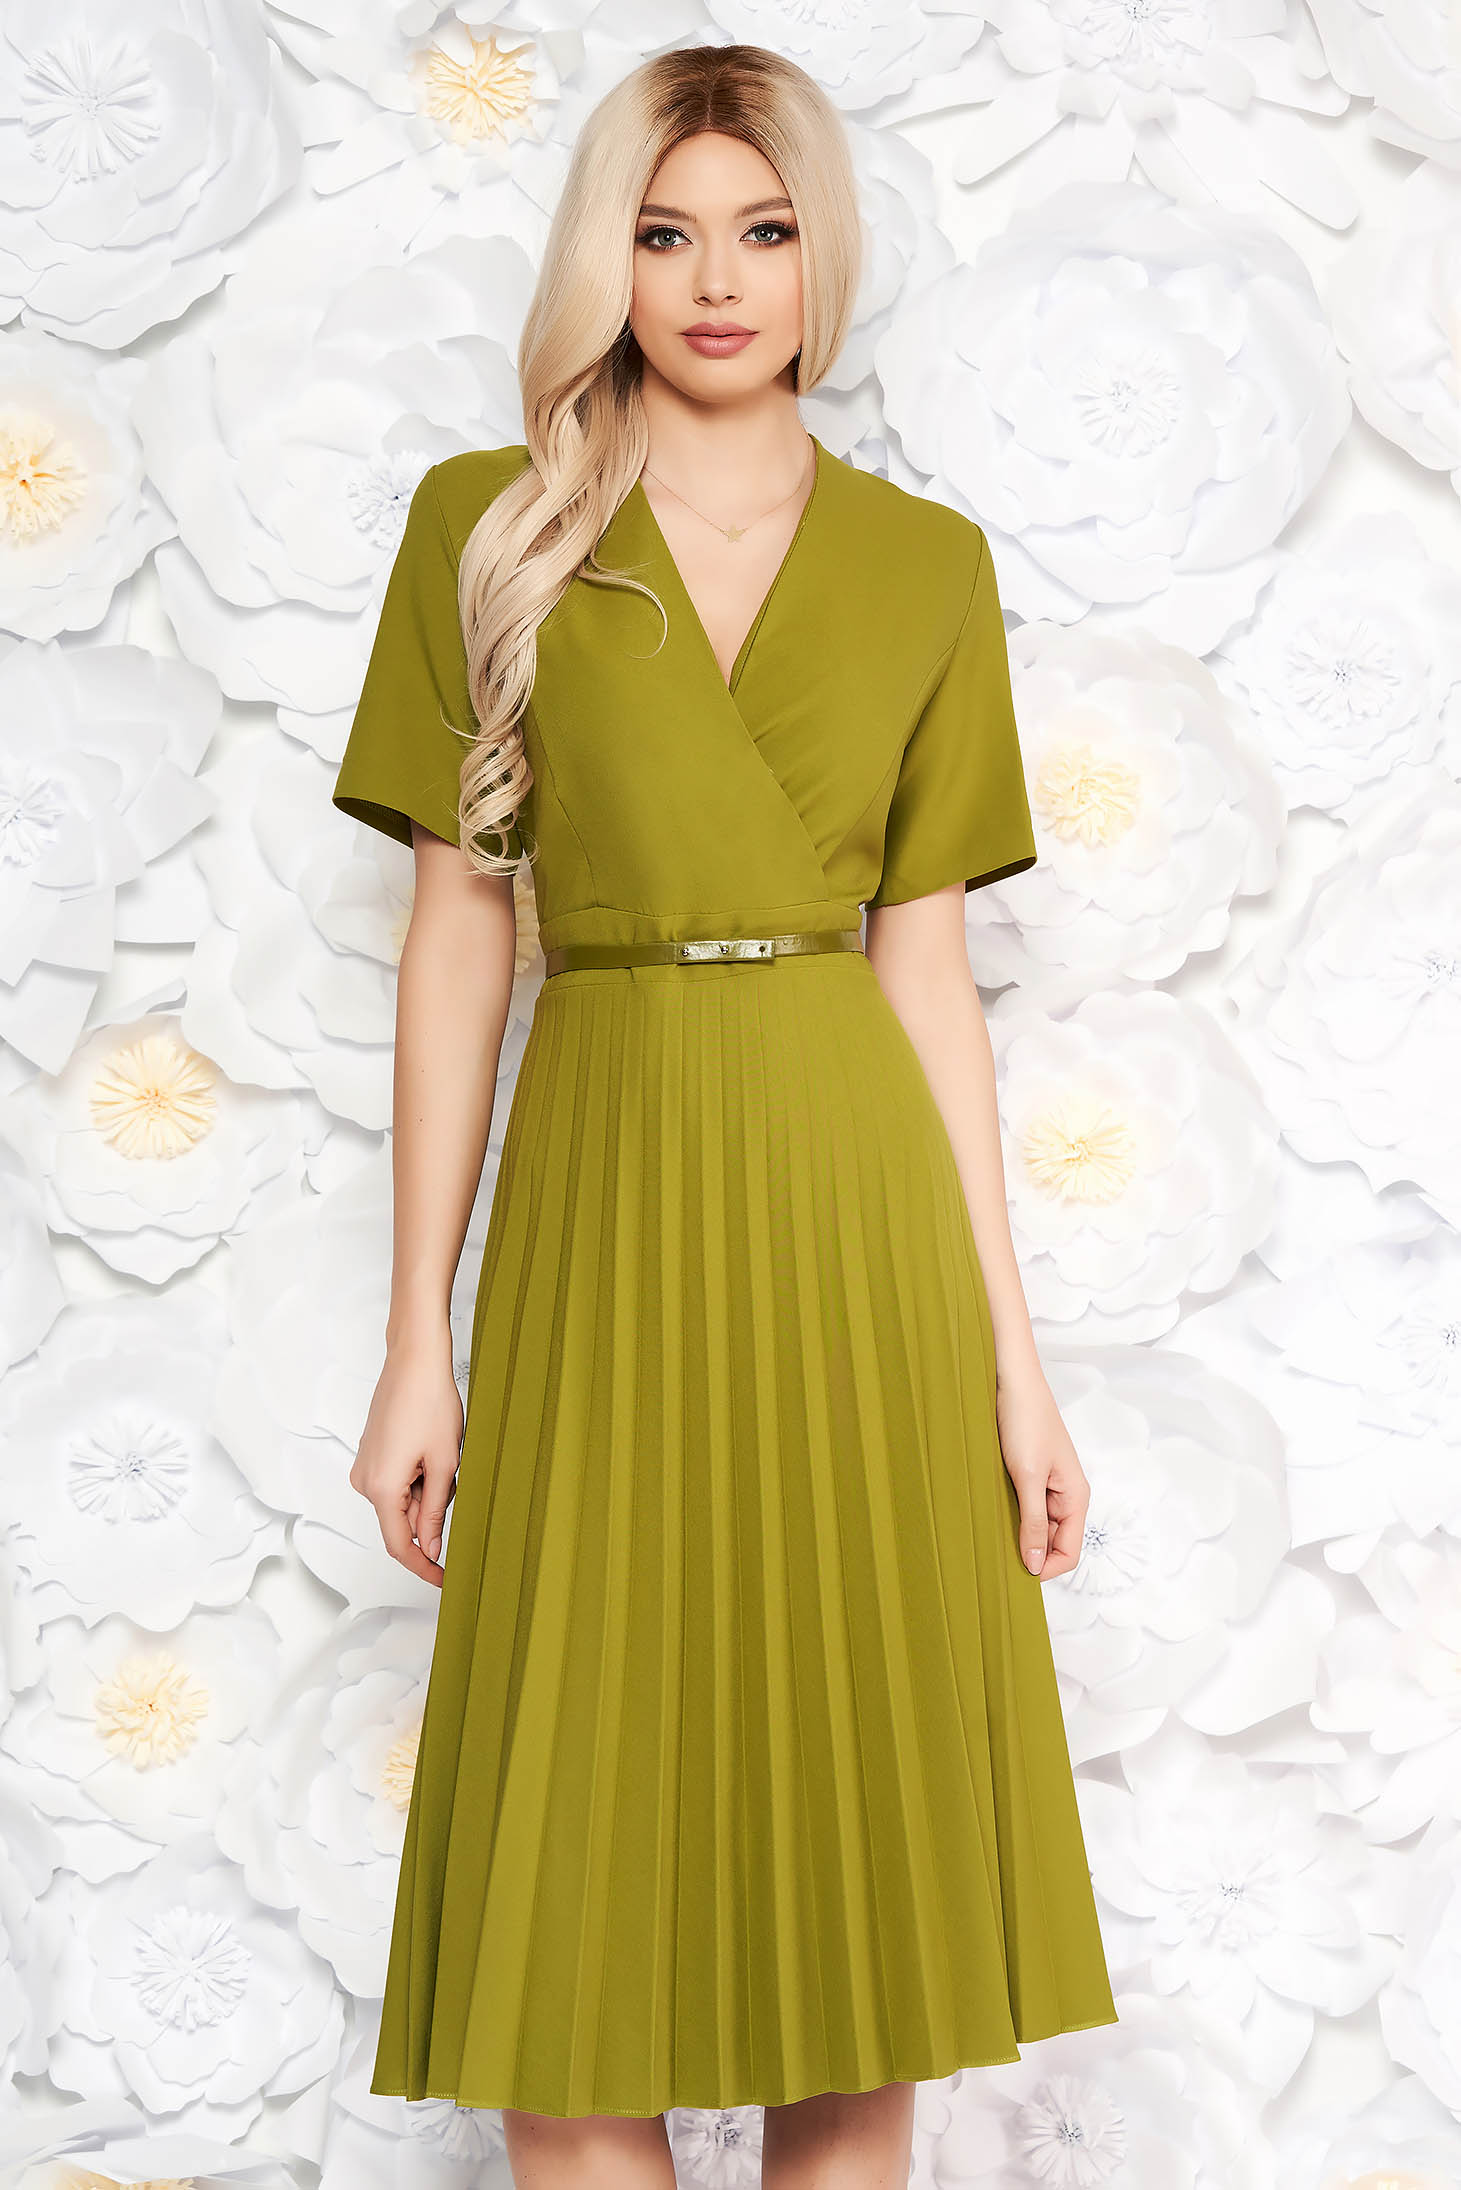 Green dress pleats of material with v-neckline flaring cut